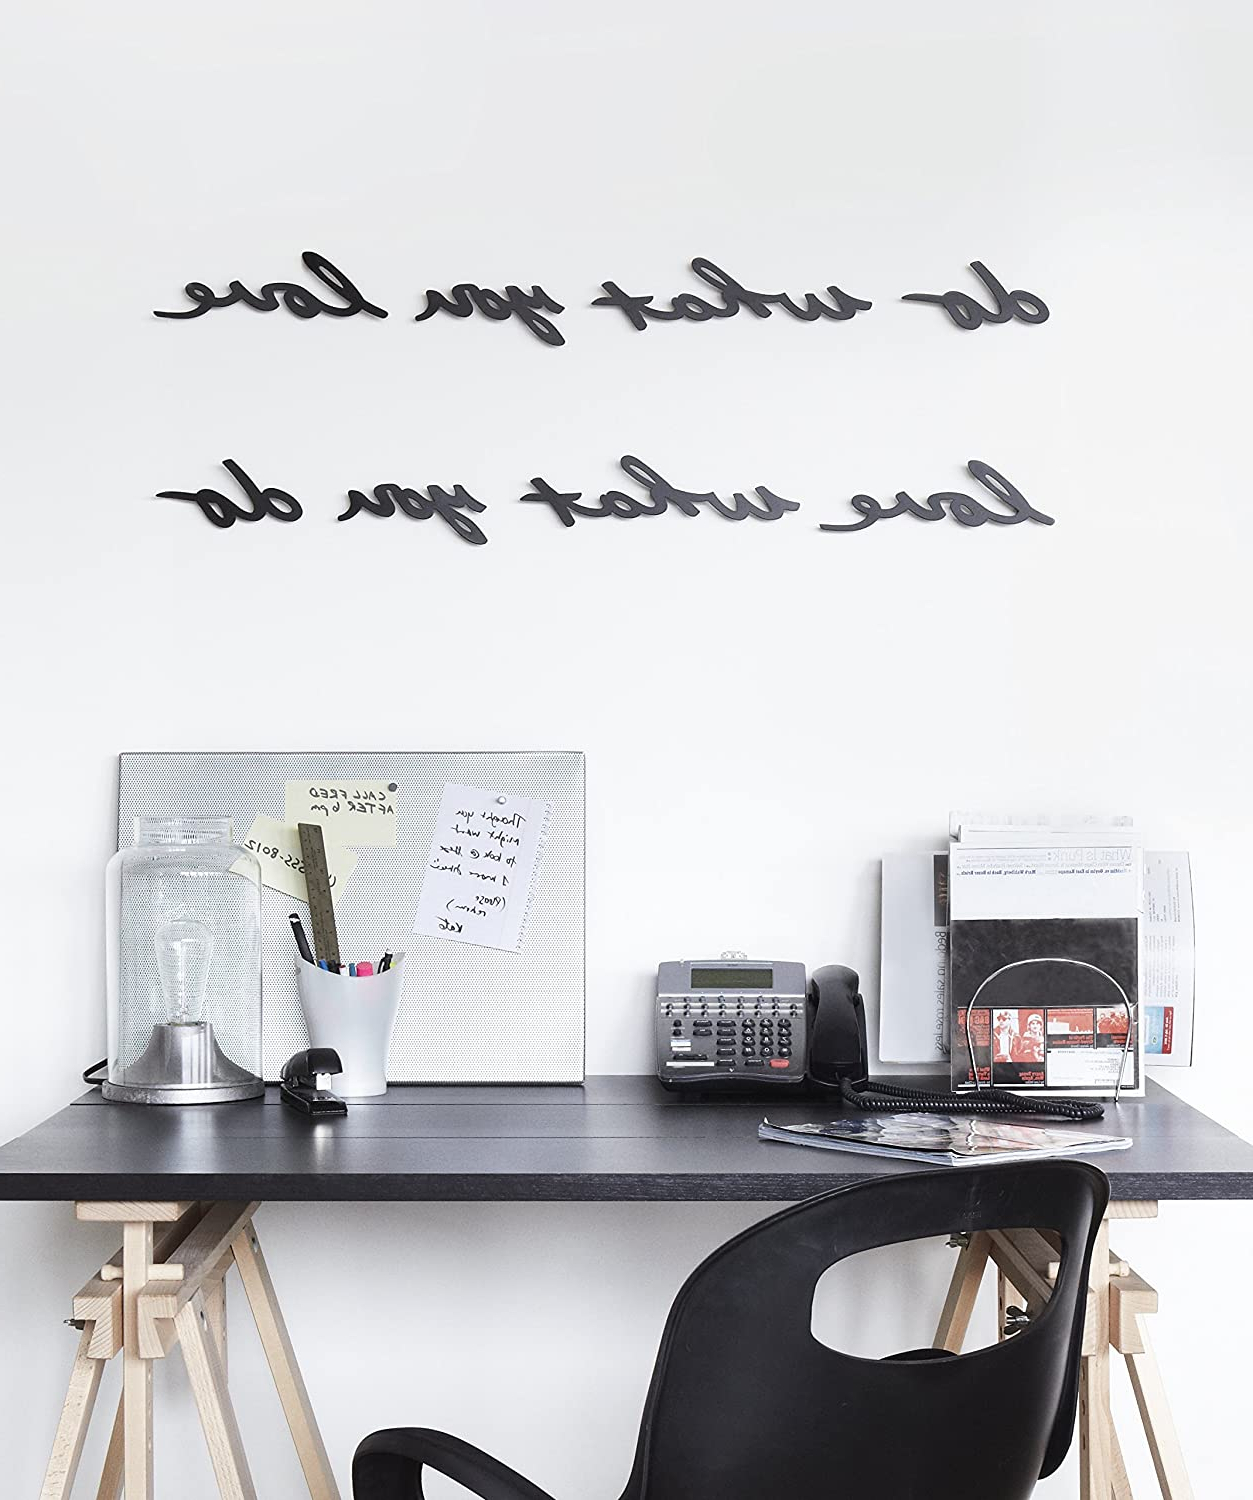 Umbra Mantra Wall Decor Phrase, Do What You Love Pertaining To Well Liked Mantra Do What You Love Wall Décor (View 8 of 20)